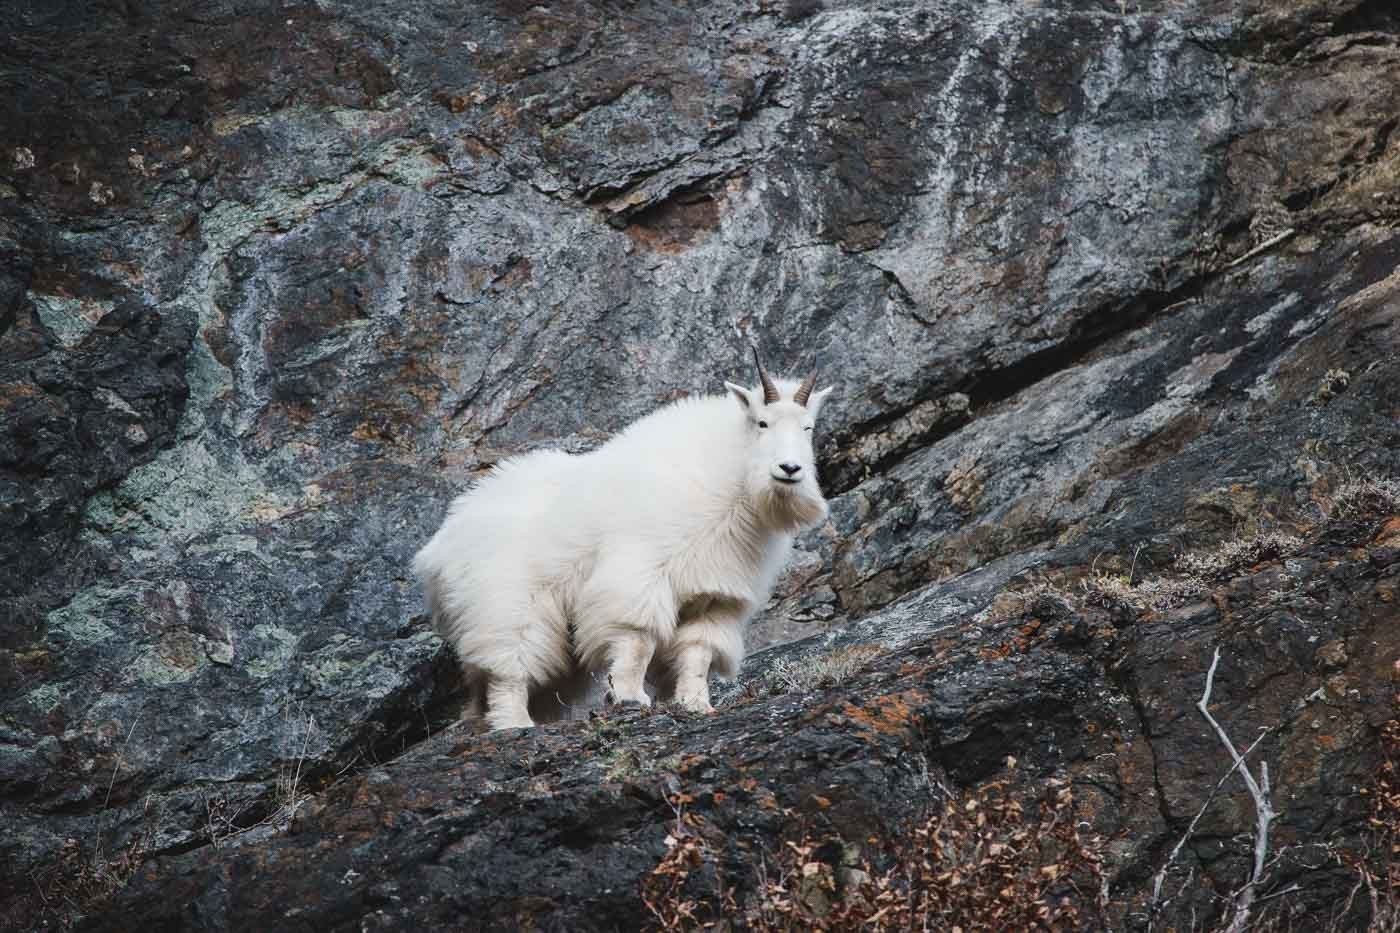 Mountain Goat in Alaska with the Tamron 150-600mm f/5-6.3